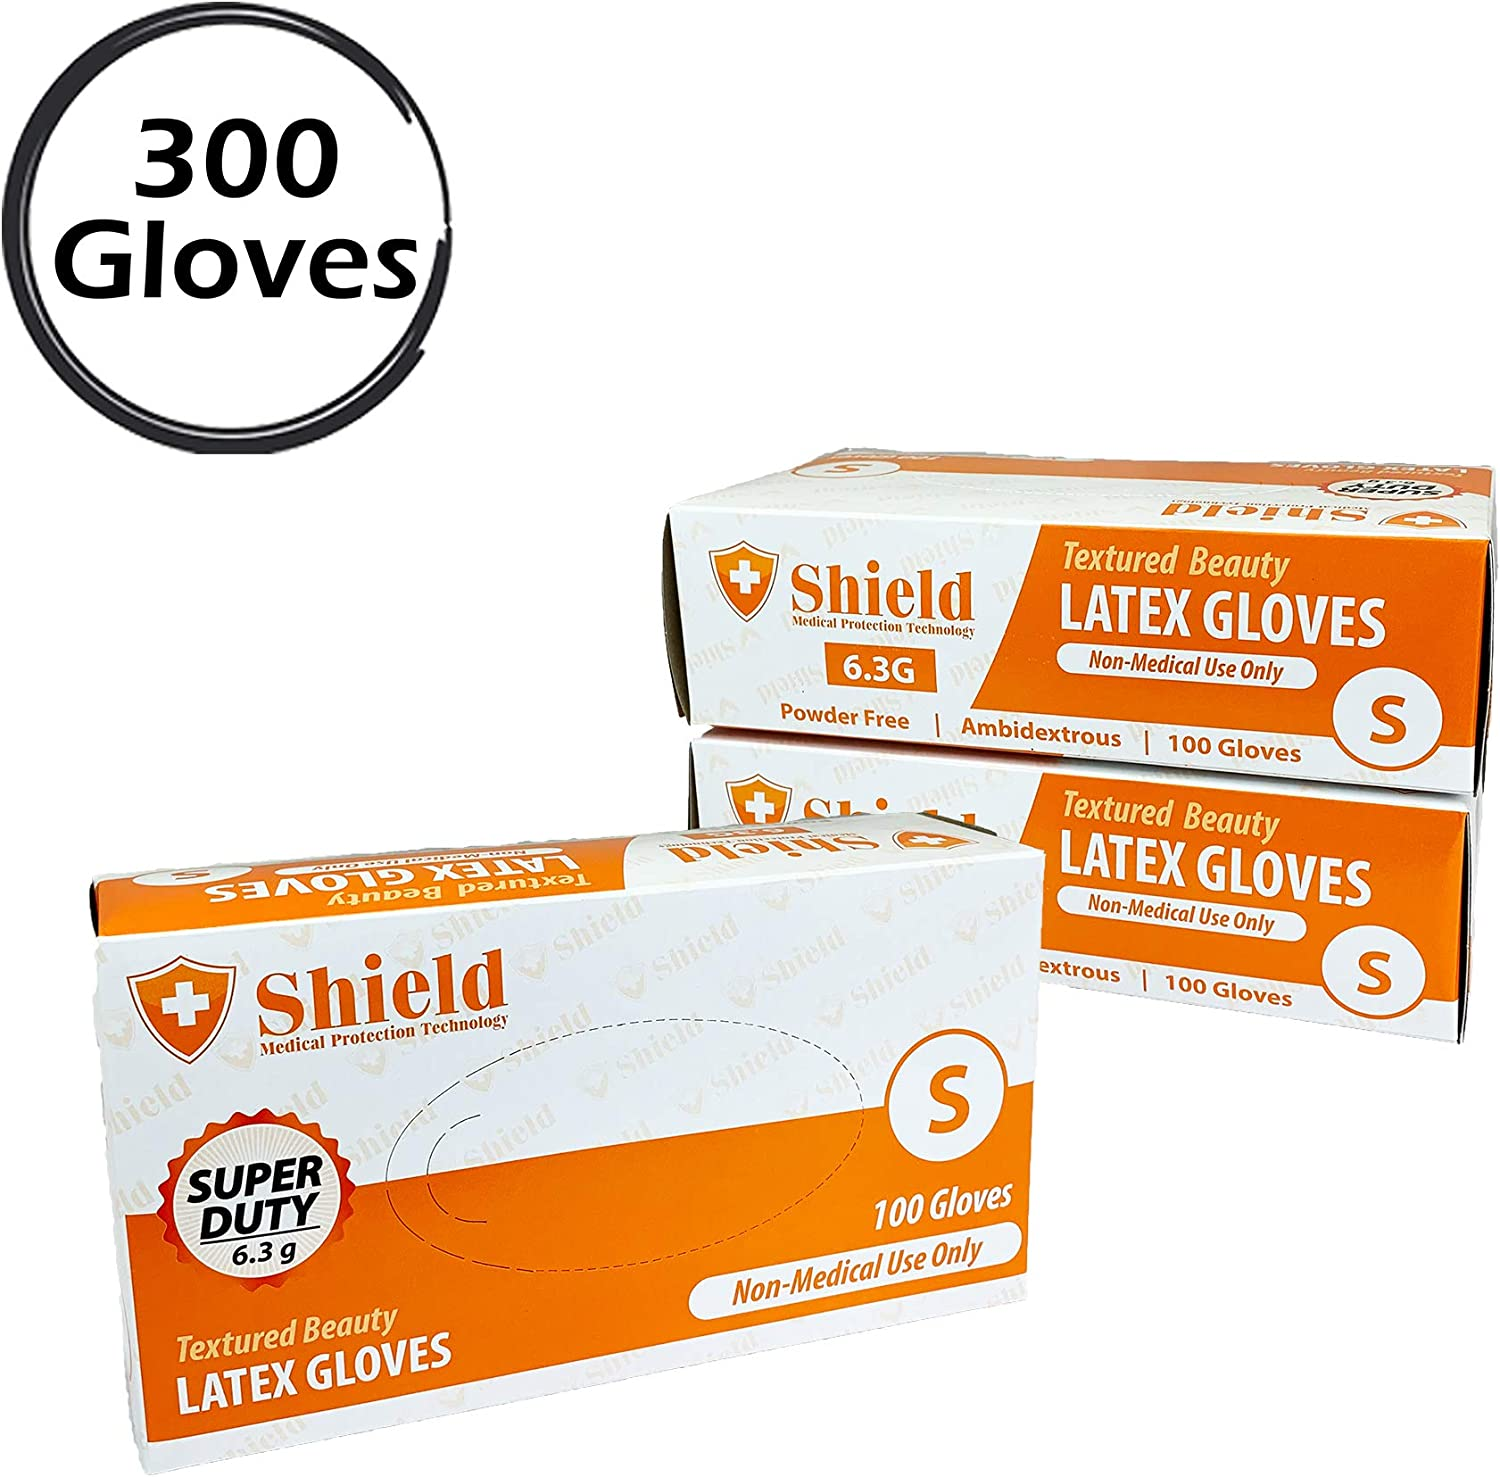 6.3g SHIELD Heavy Duty Latex Gloves 300, Medium Textured Disposable Ivory Color Non-Sterile Powder Free Ambidextrous